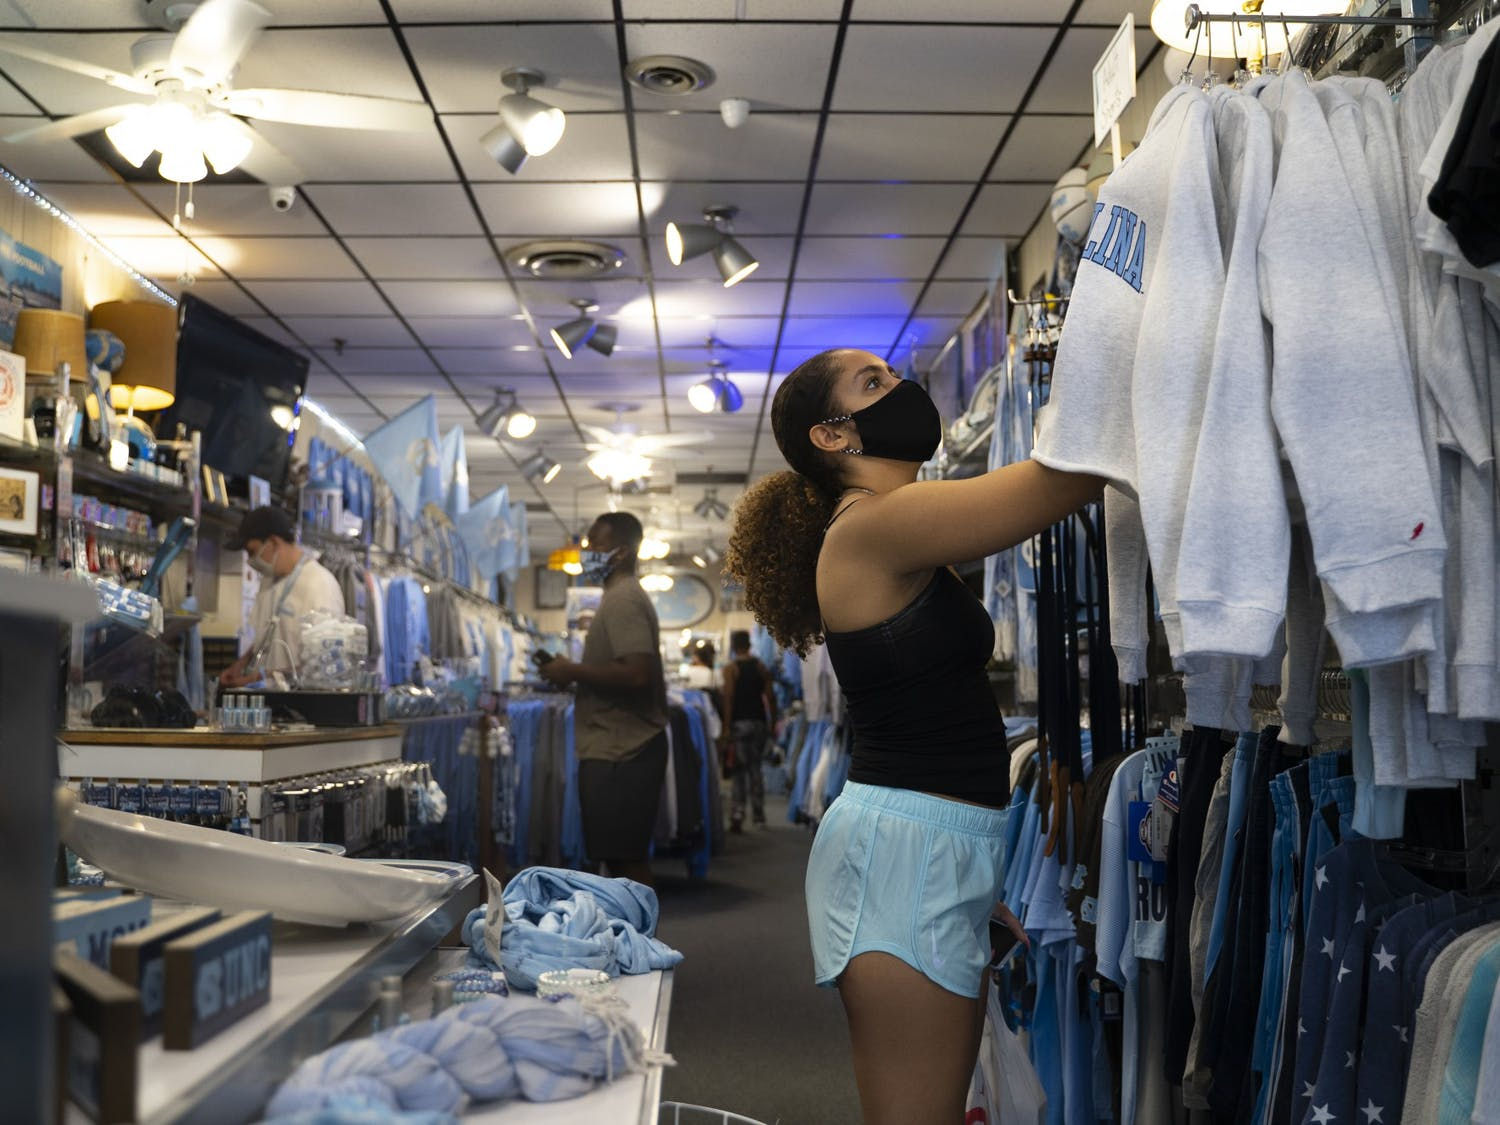 First-years Kambree Vincent (front) and Shawn Williamson (behind) shop for UNC apparel at Carolina Pride on Franklin Street on Thursday, Aug. 6, 2020.